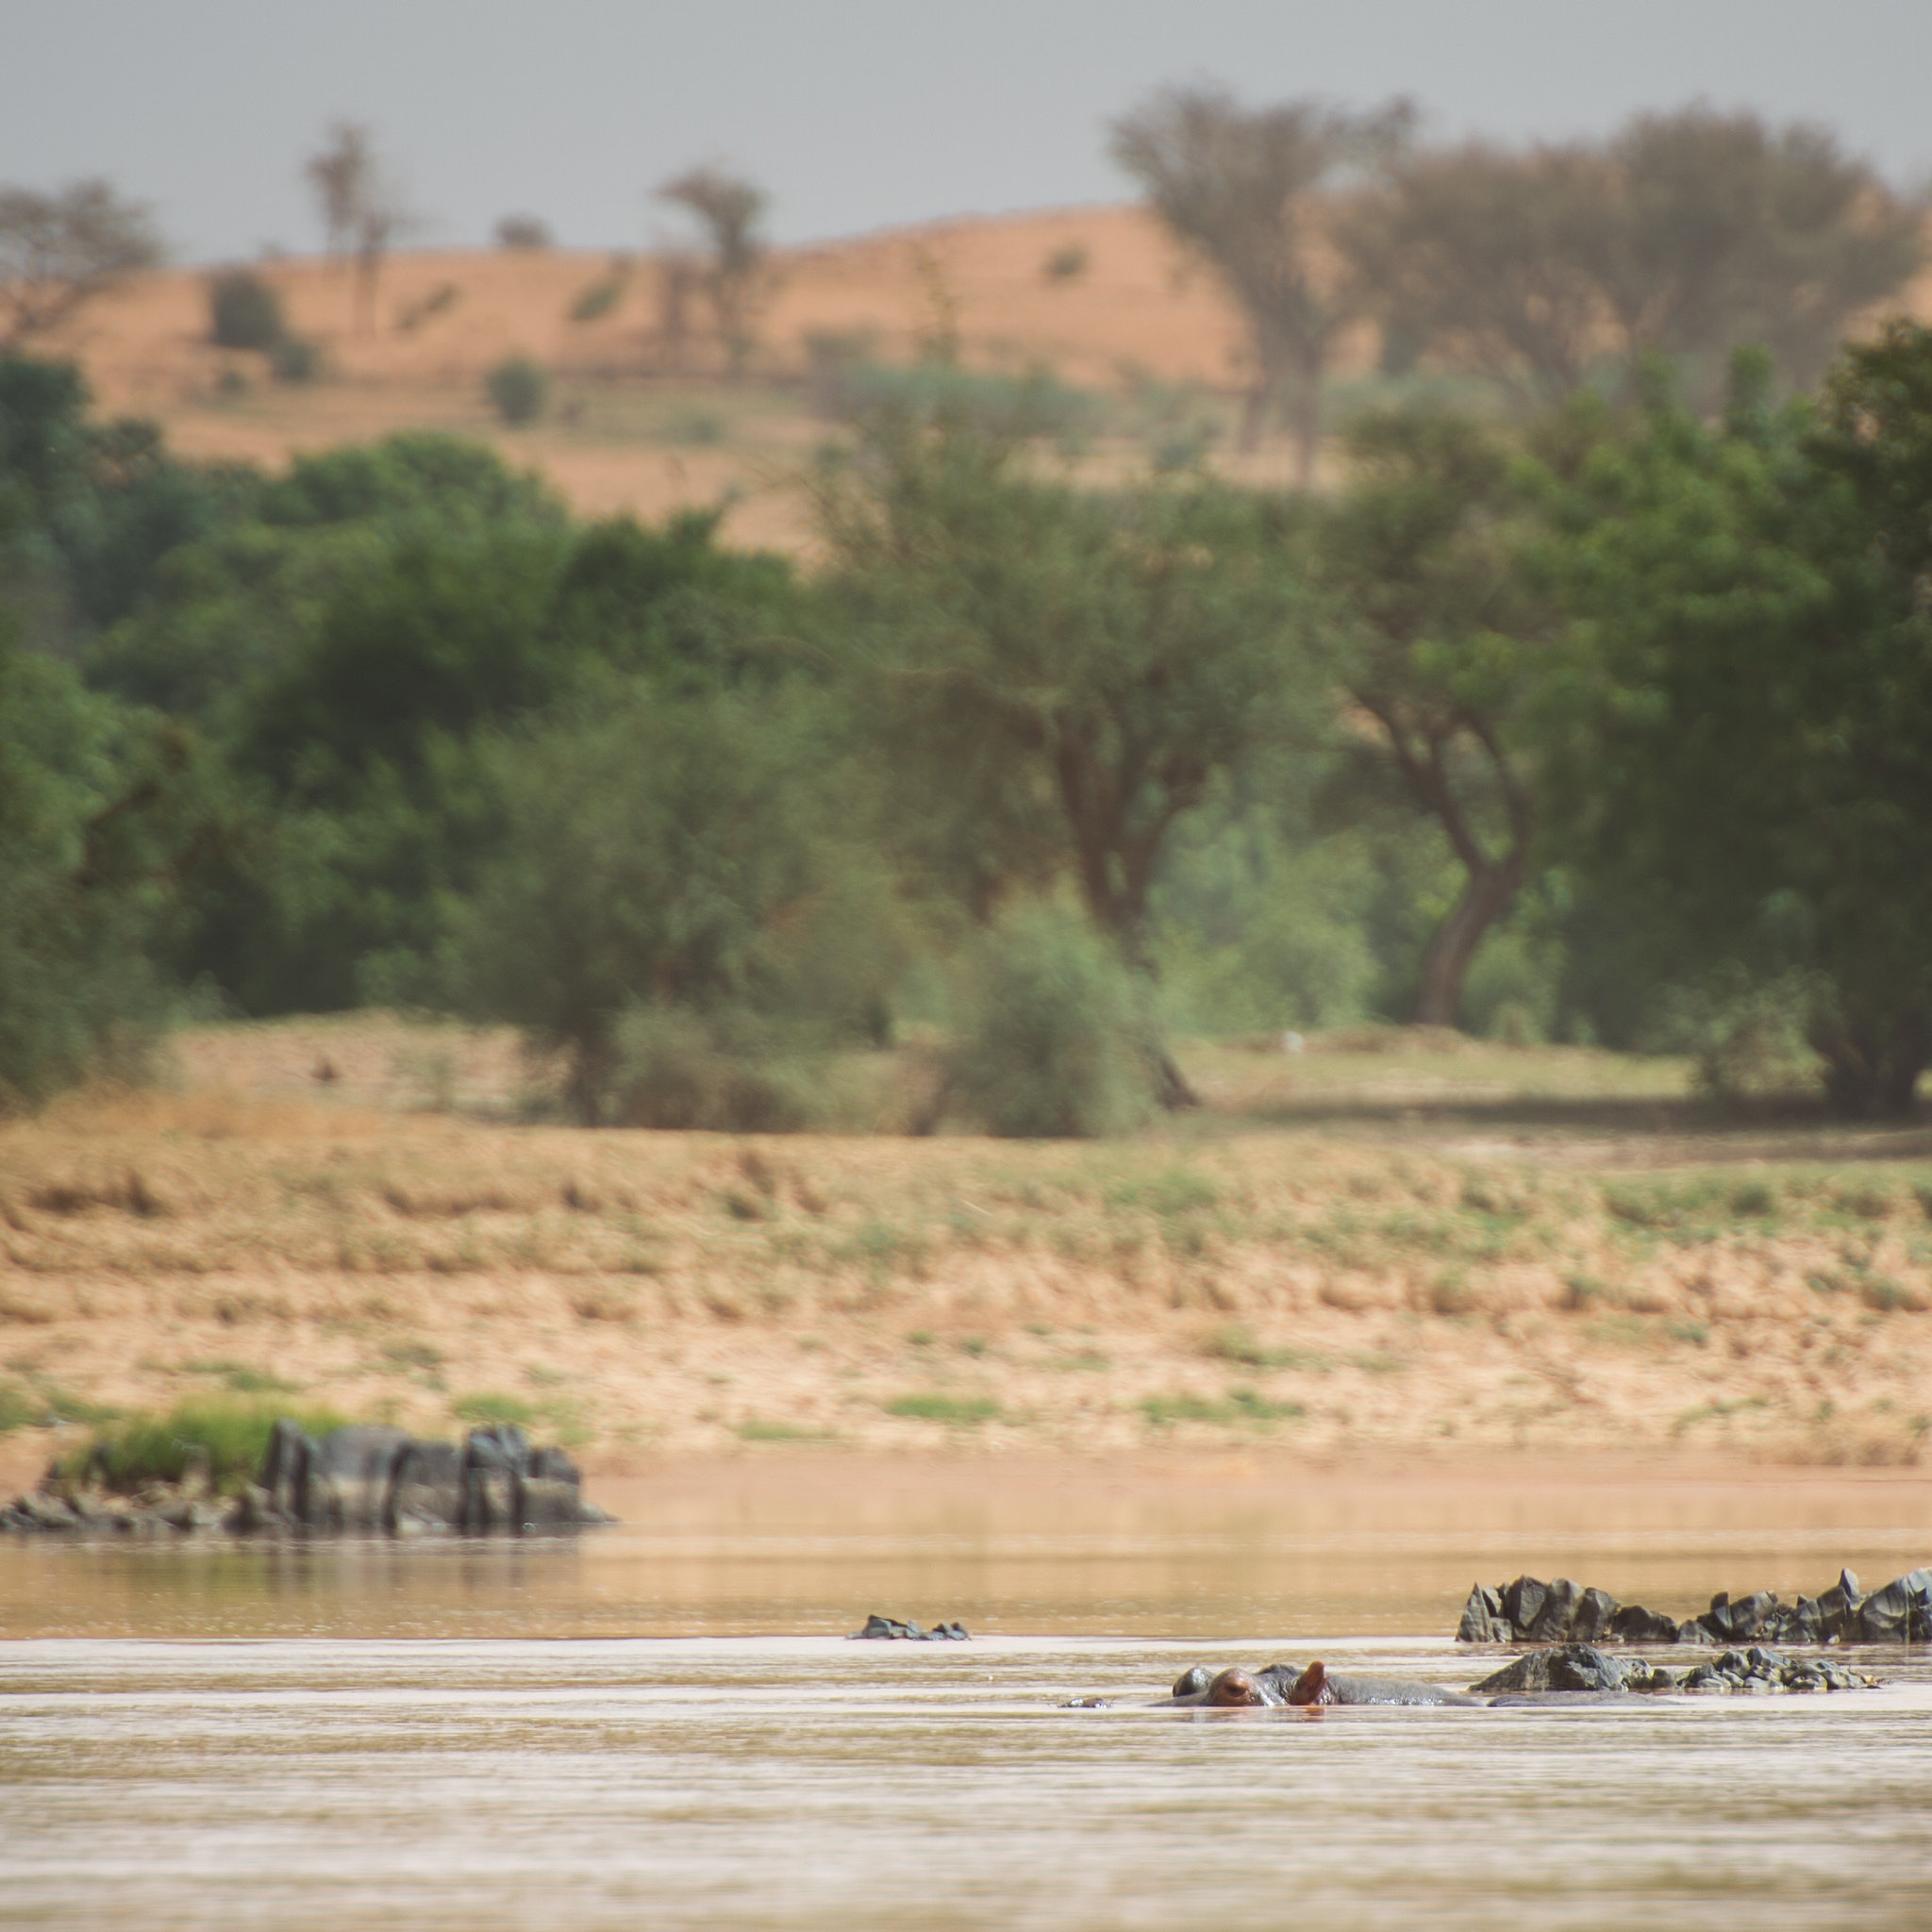 Hippo in the Niger River